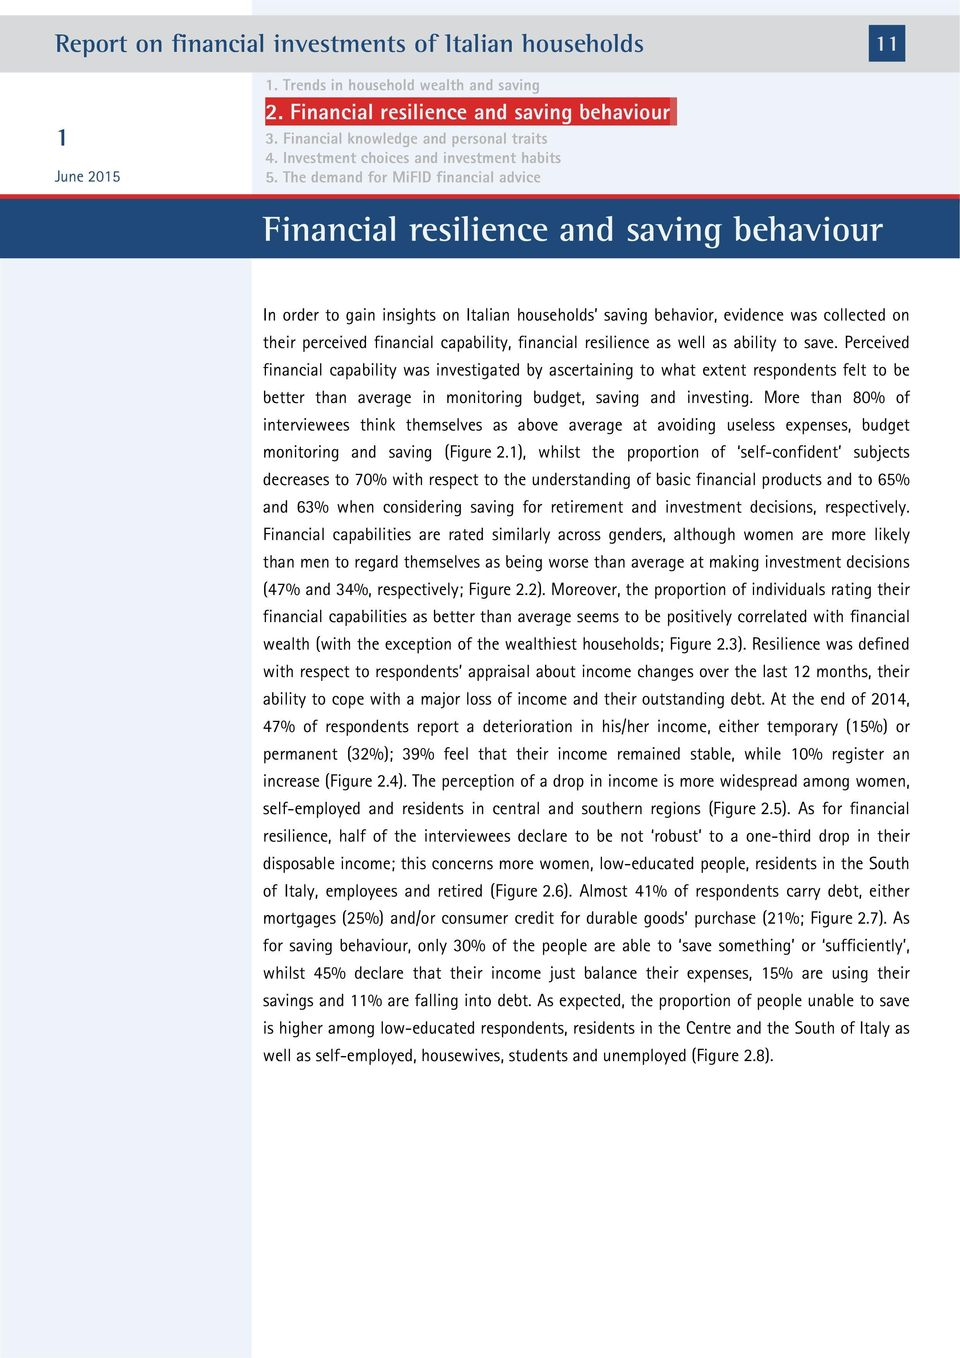 Perceived financial capability was investigated by ascertaining to what extent respondents felt to be better than average in monitoring budget, saving and investing.